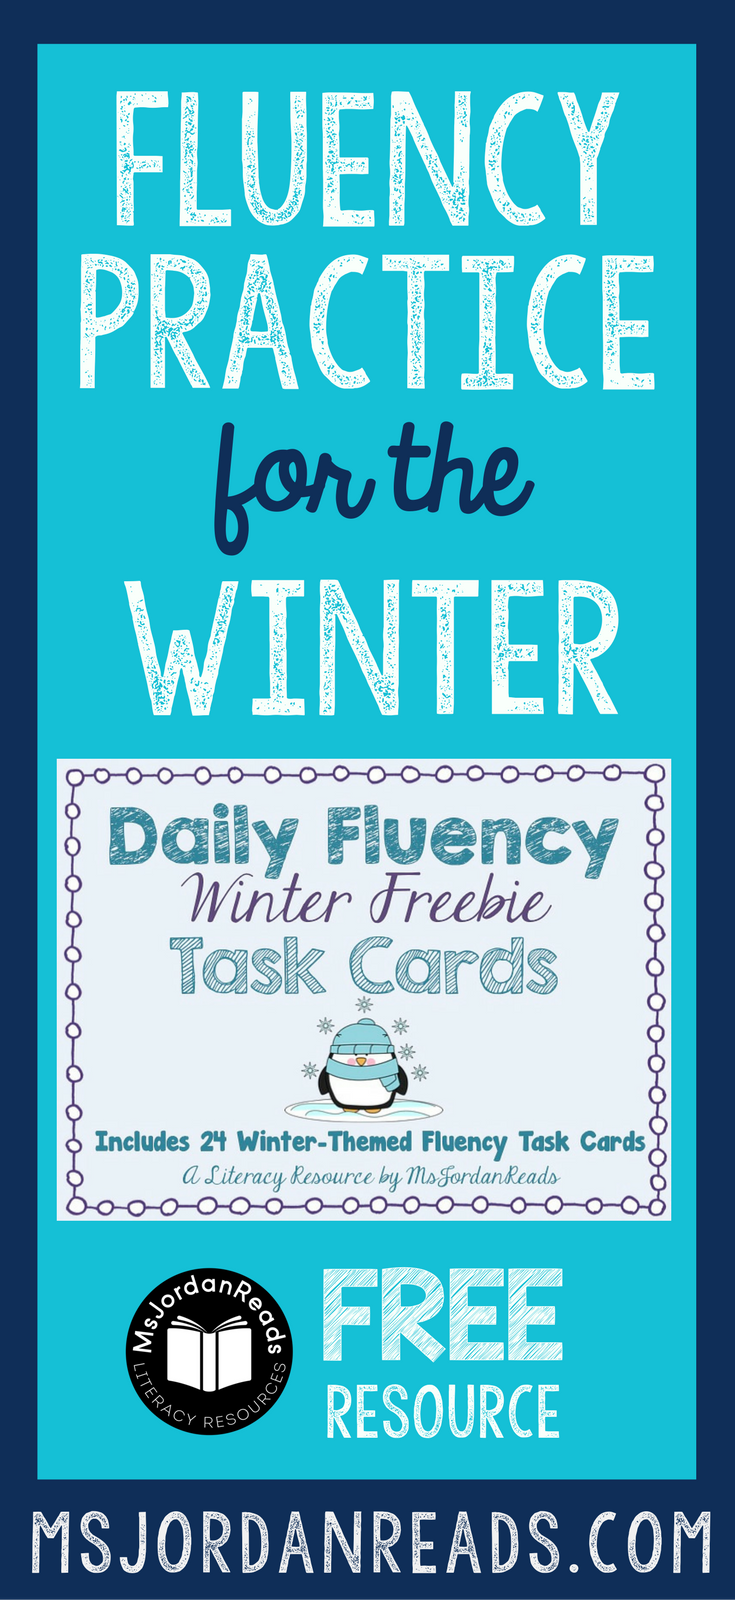 Winter Fluency Task Cards that you can download for your classroom FREE! | Free printable task cards for fluency practice at school or at home. Students will enjoy the variety of fluency tasks!